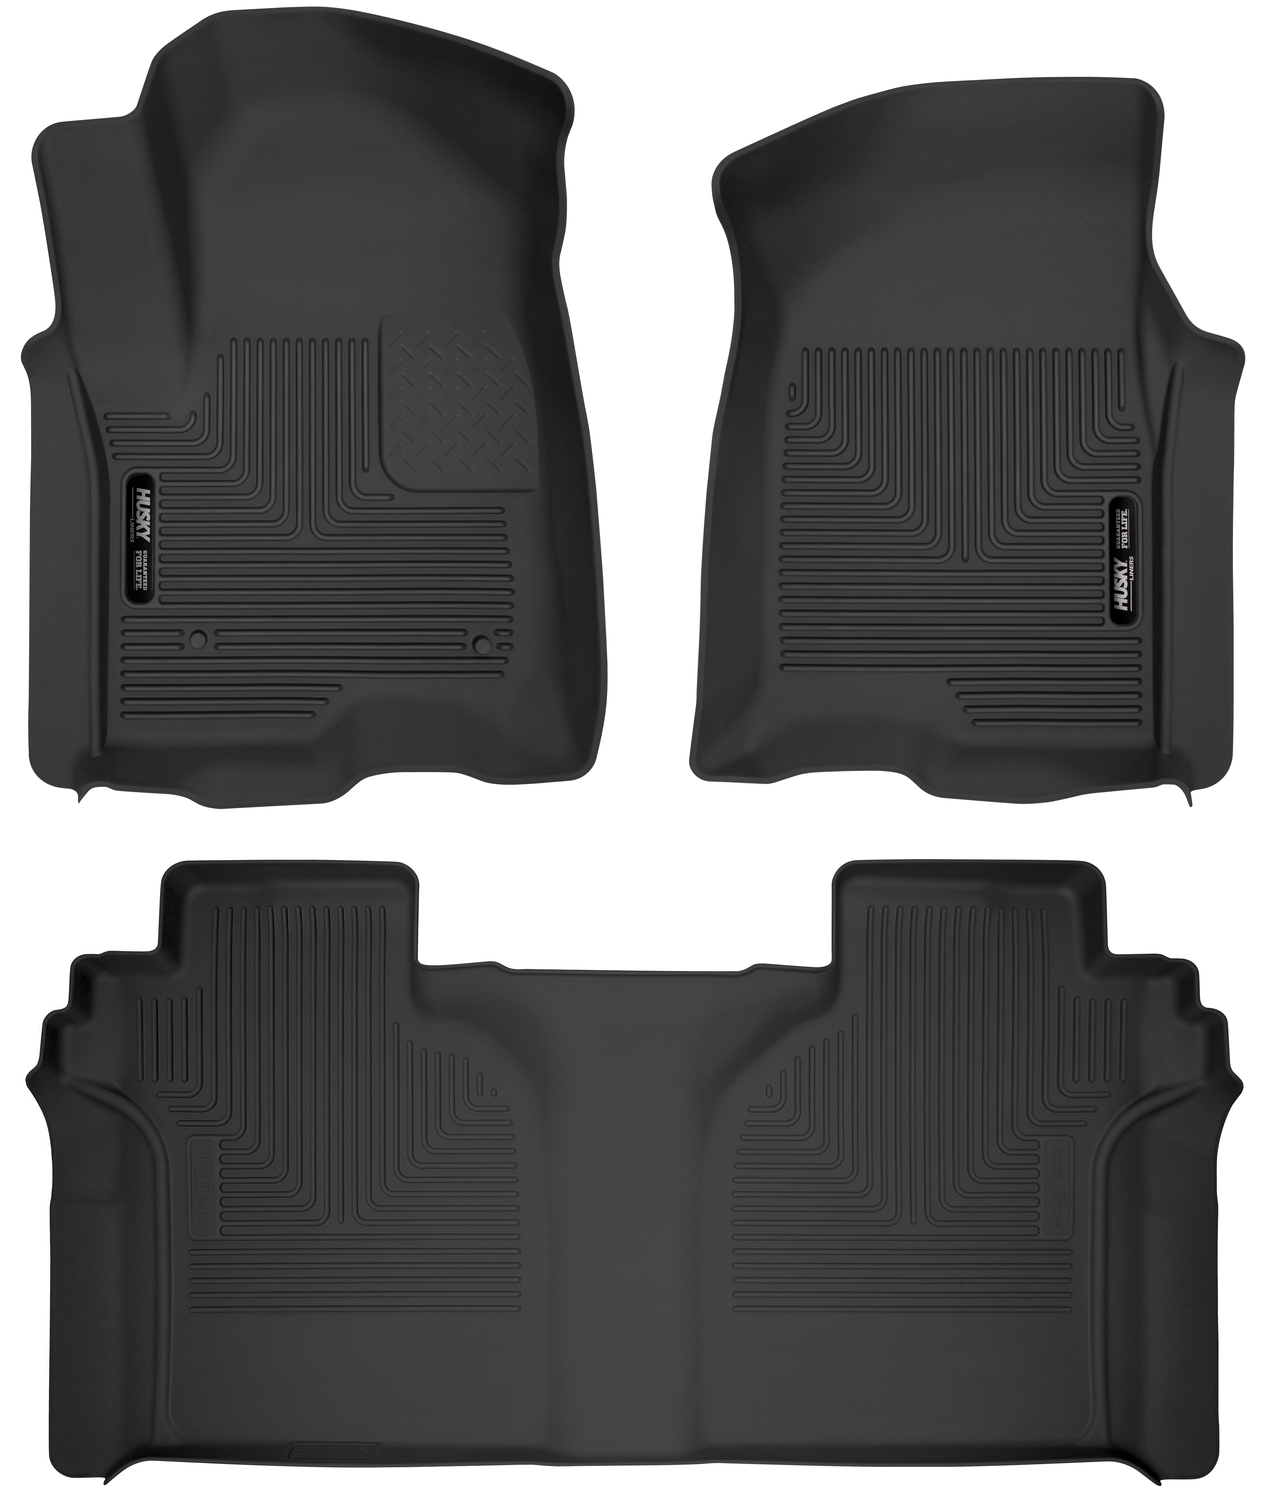 1996 Passenger /& Rear GGBAILEY D4225A-S1A-BLK/_BR Custom Fit Automotive Carpet Floor Mats for 1993 1994 1995 1997 Chevrolet Camaro Coupe Black with Red Edging Driver